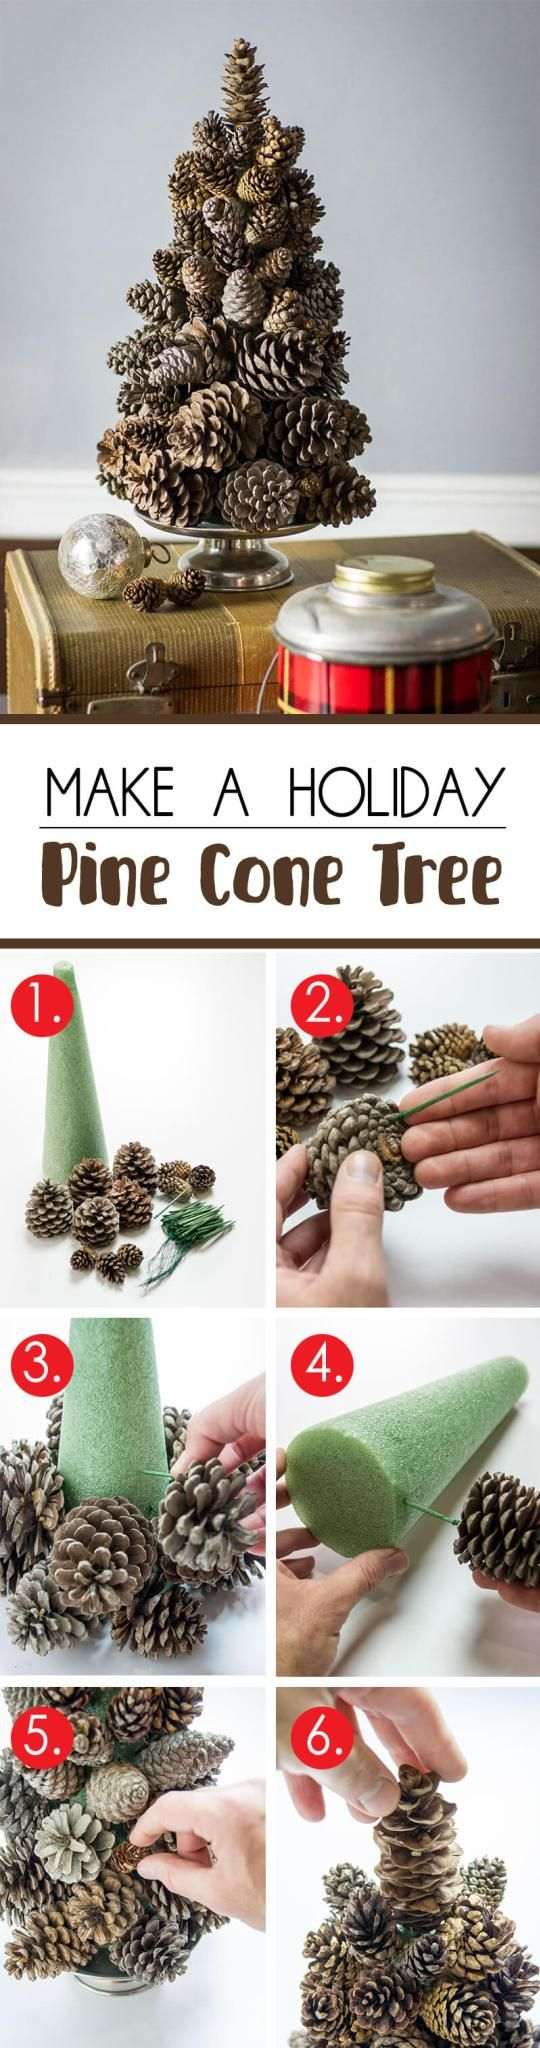 pinecone christmas crafts